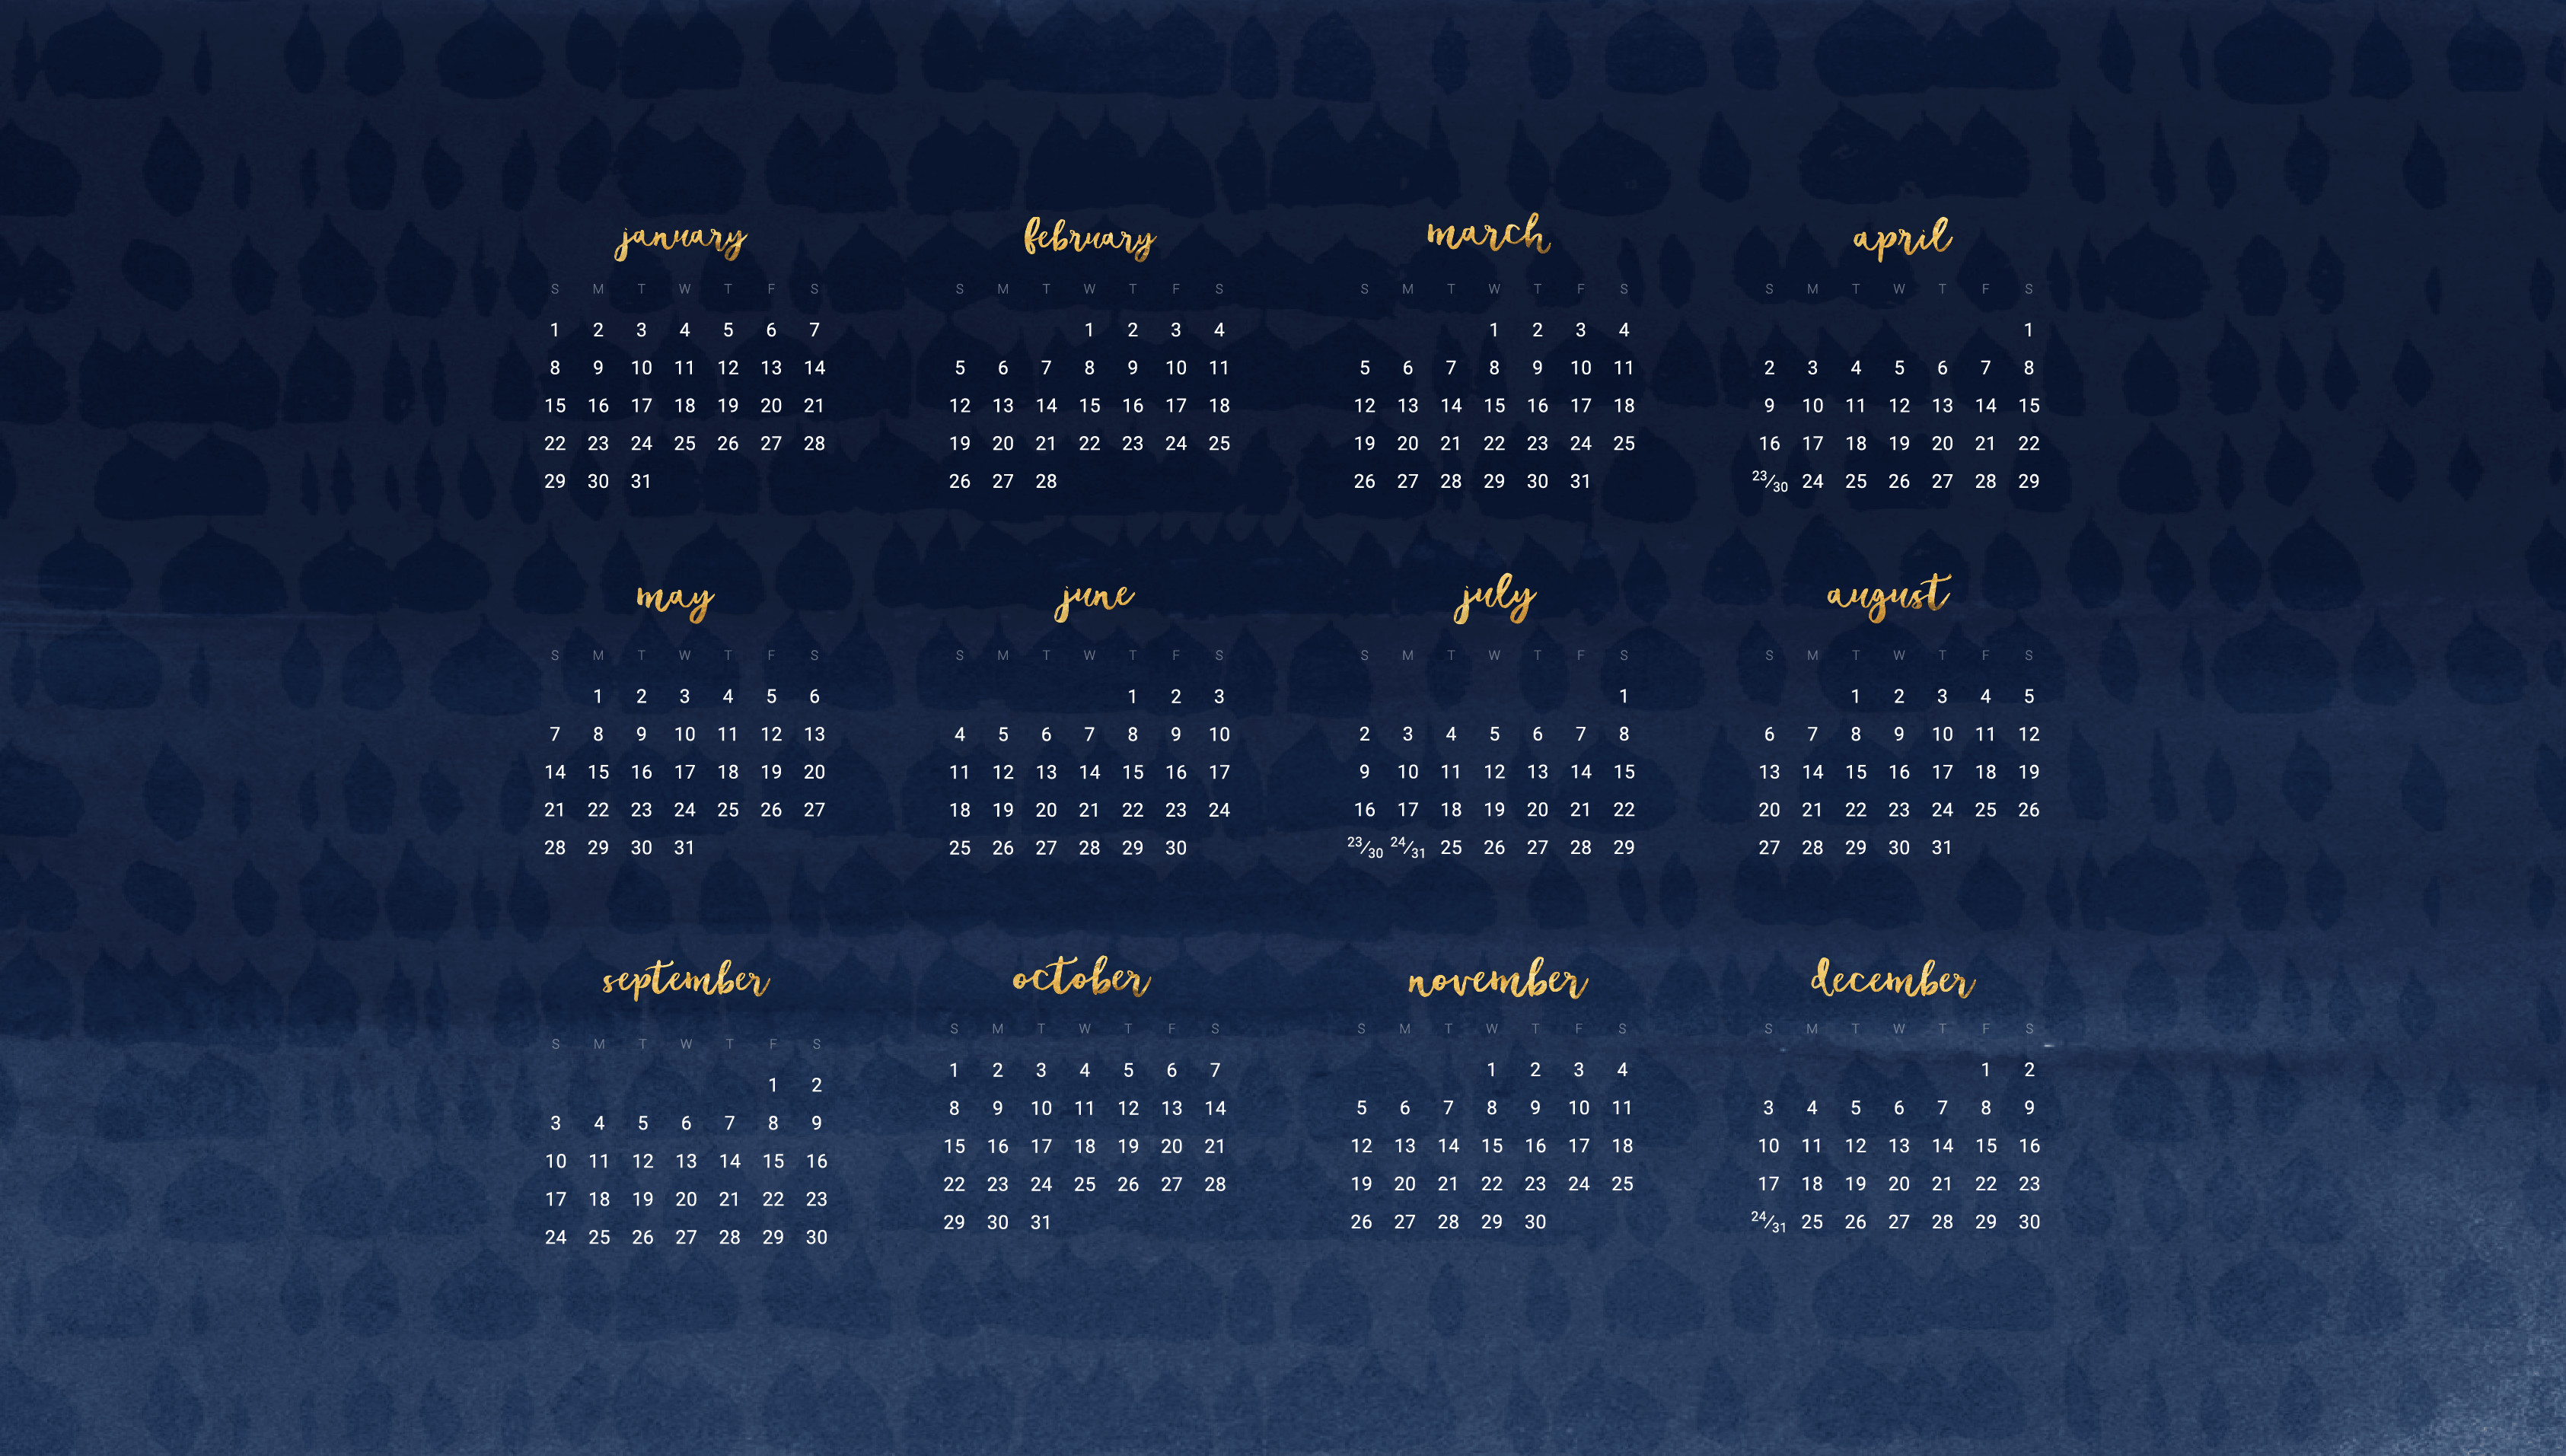 3371x1913 Free 2017 desktop wallpaper calendars | lovely freebies | Pinterest |  Wallpaper